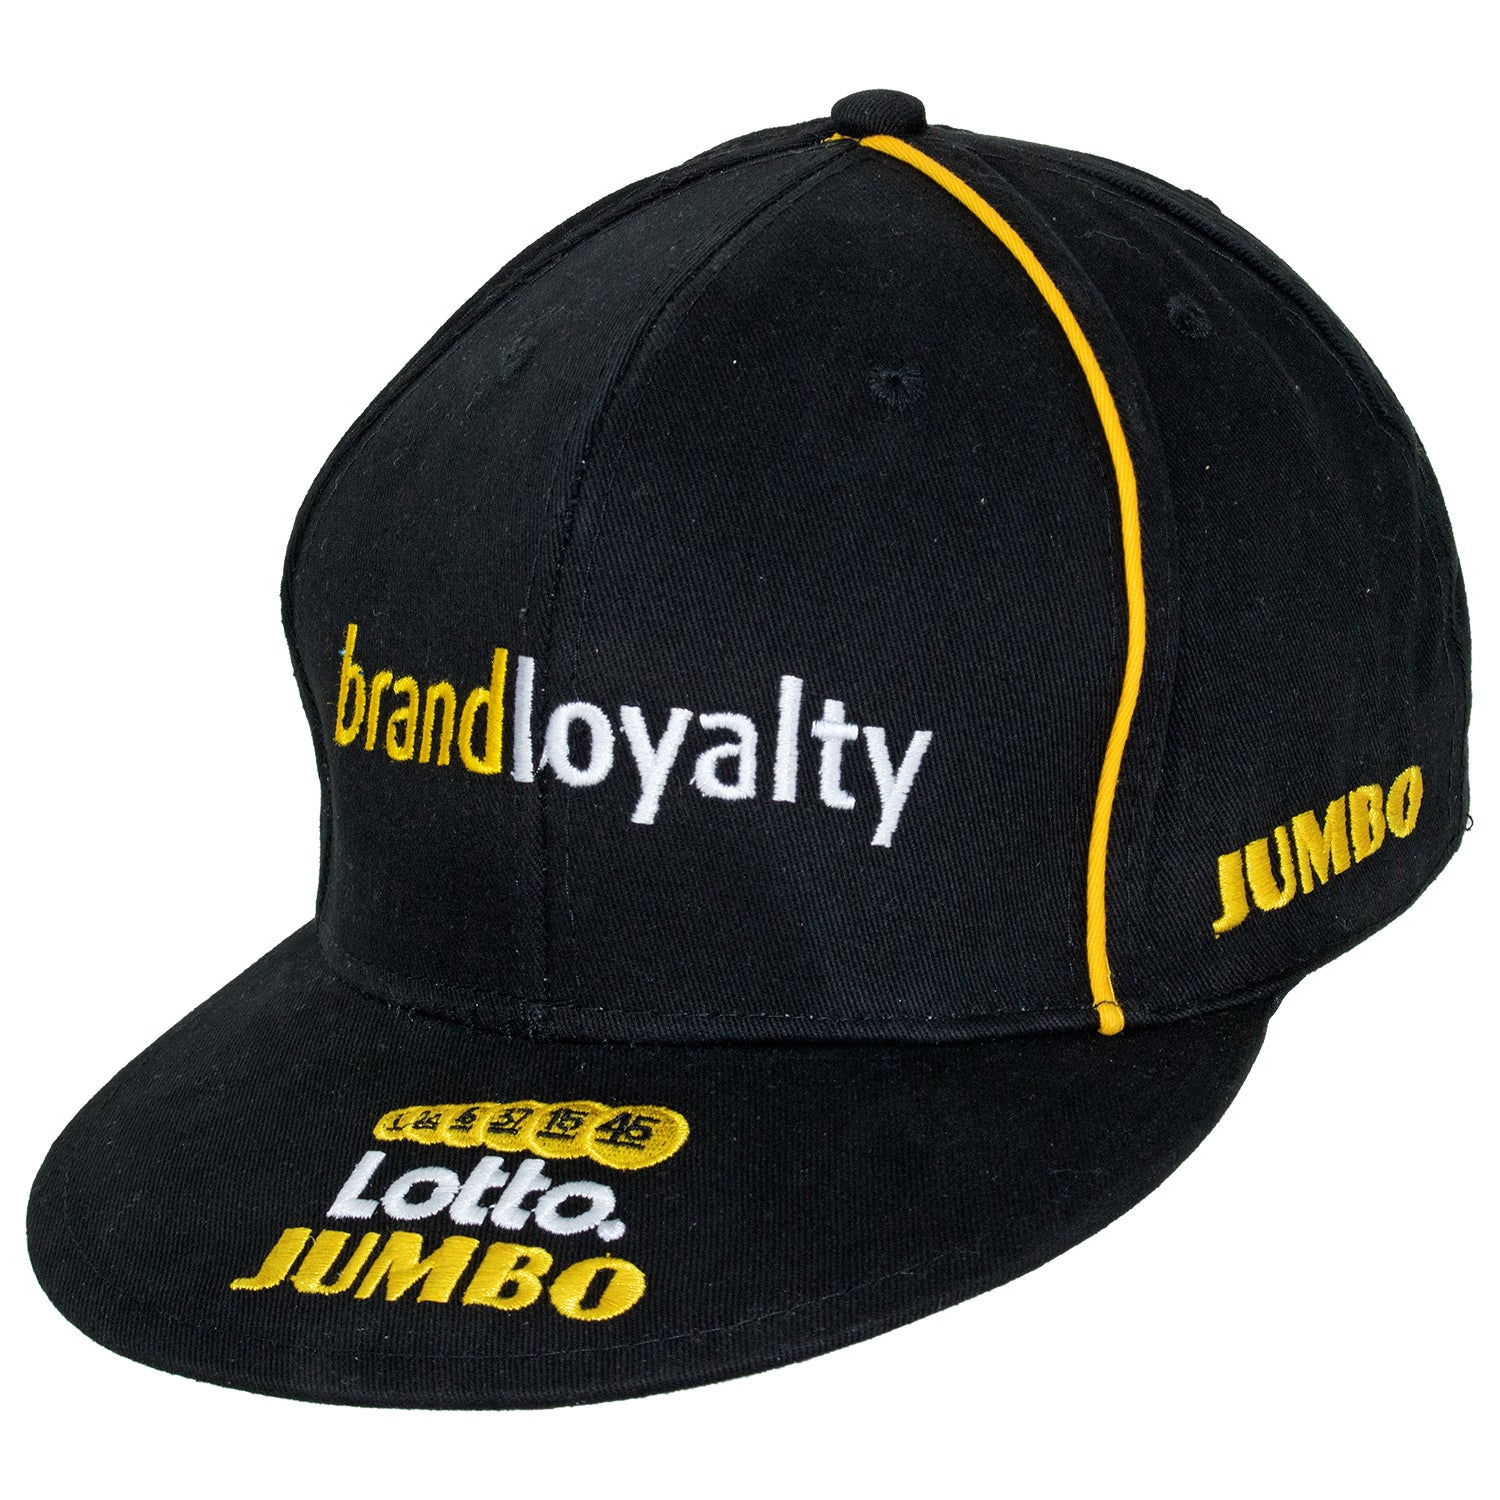 Team Lotto NL Jumbo Podium Cap